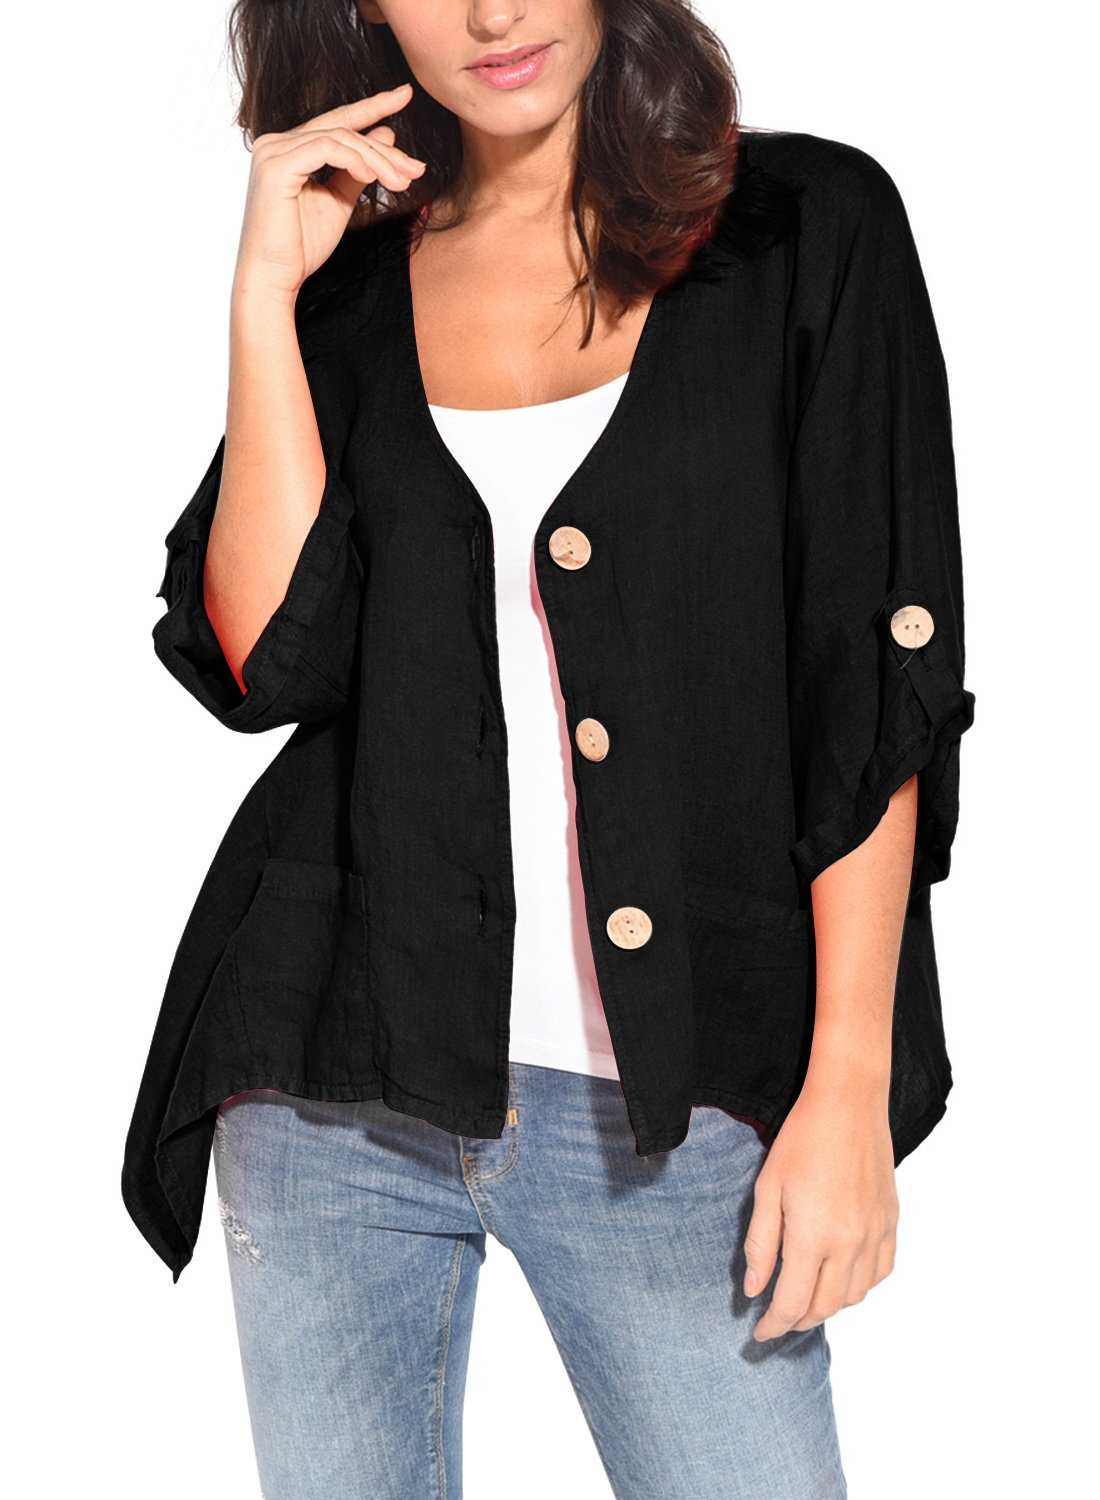 HOTAPEI Women's Balck 3/4 Roll up Sleeve Button Down Linen Summer Casual Kimono Cardigan Shirts Loose Blouses Tops,Large